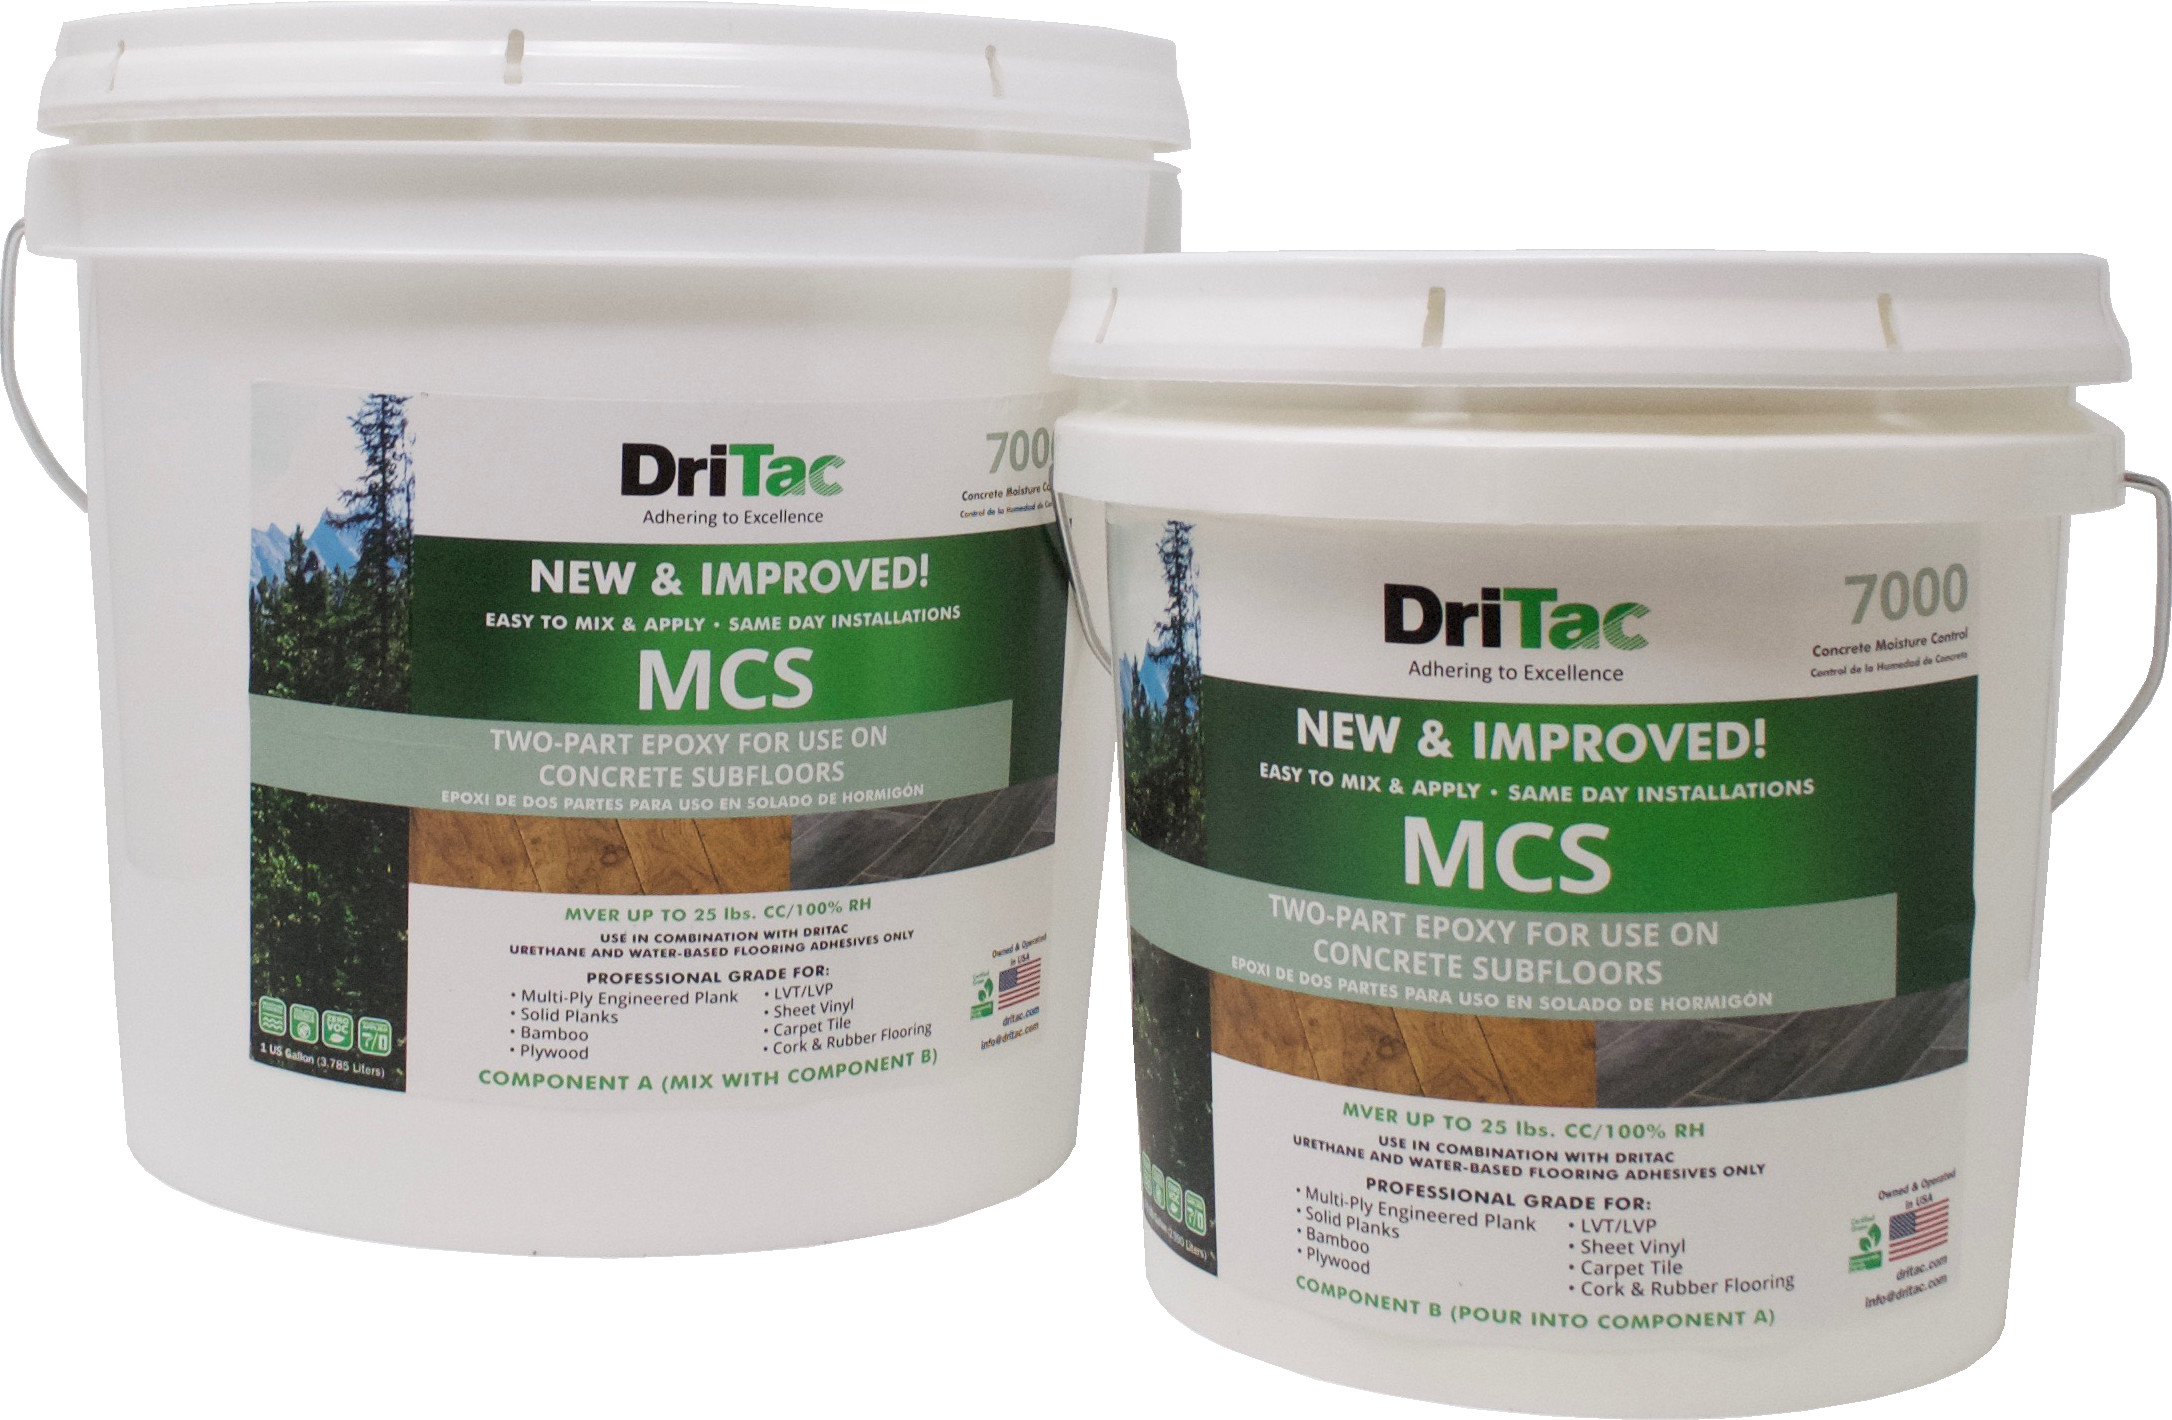 Engineered Hardwood Floor Scratch Repair Kit Of Installation Instructions for Dritacs Premium Flooring Adhesive with Regard to Download Dritac Engineered Wood Floor Repair Kit Technical Data Sheet